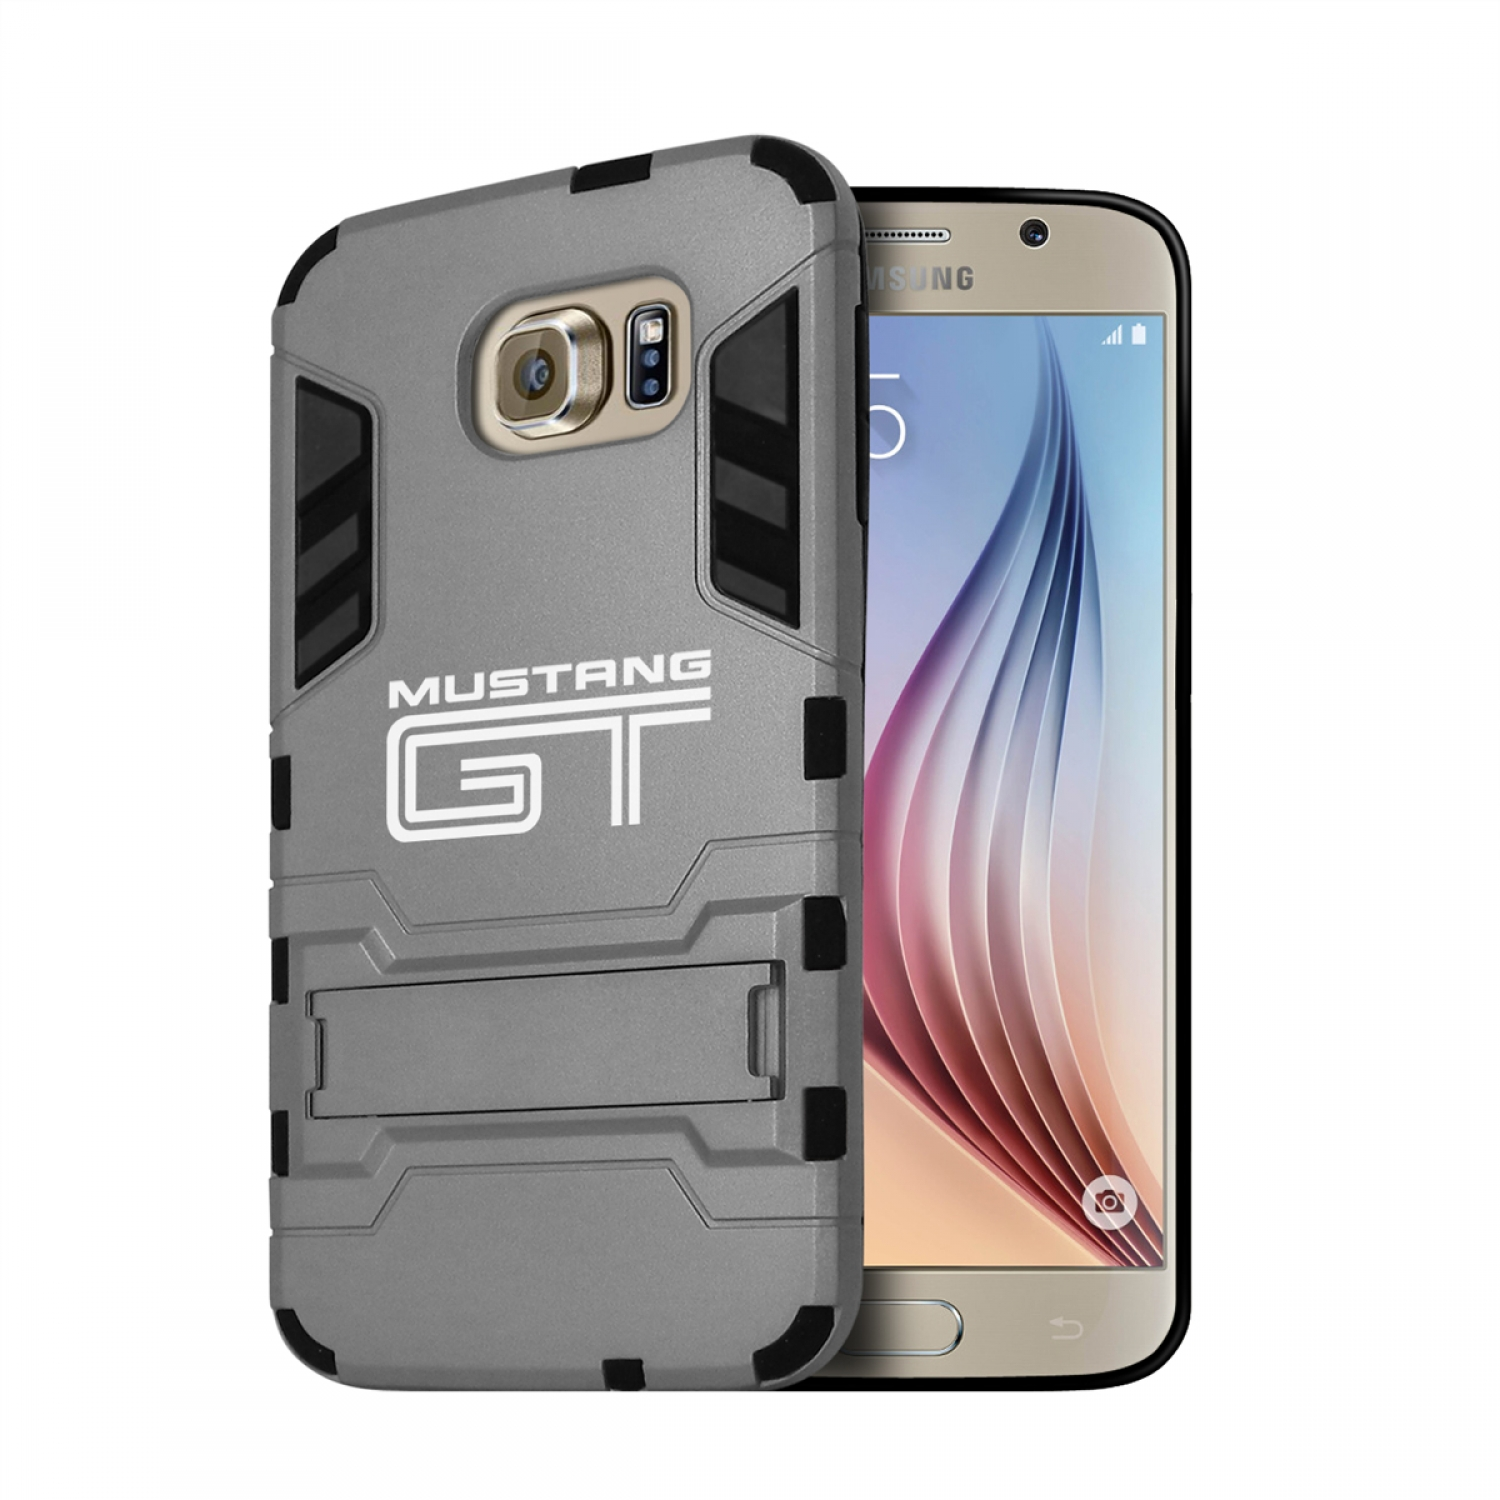 Ford Mustang GT Samsung Galaxy S6 Shockproof TPU ABS Hybrid Gray Phone Case